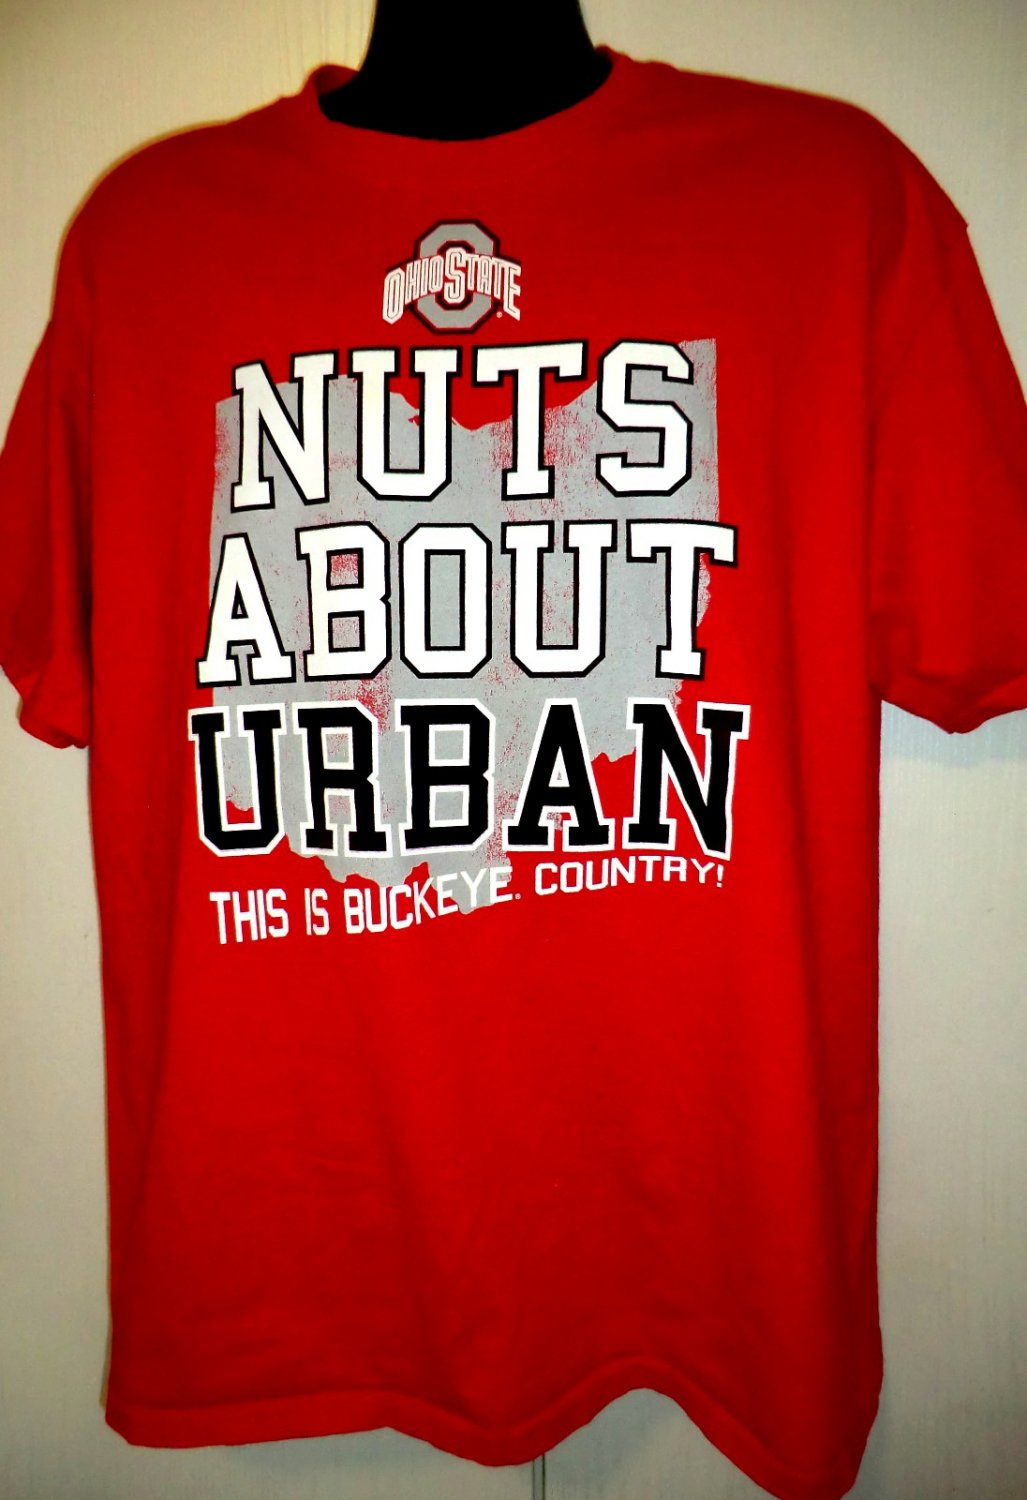 Ohio State Nuts About Urban This is Buckeye Country! T-Shirt Size XL